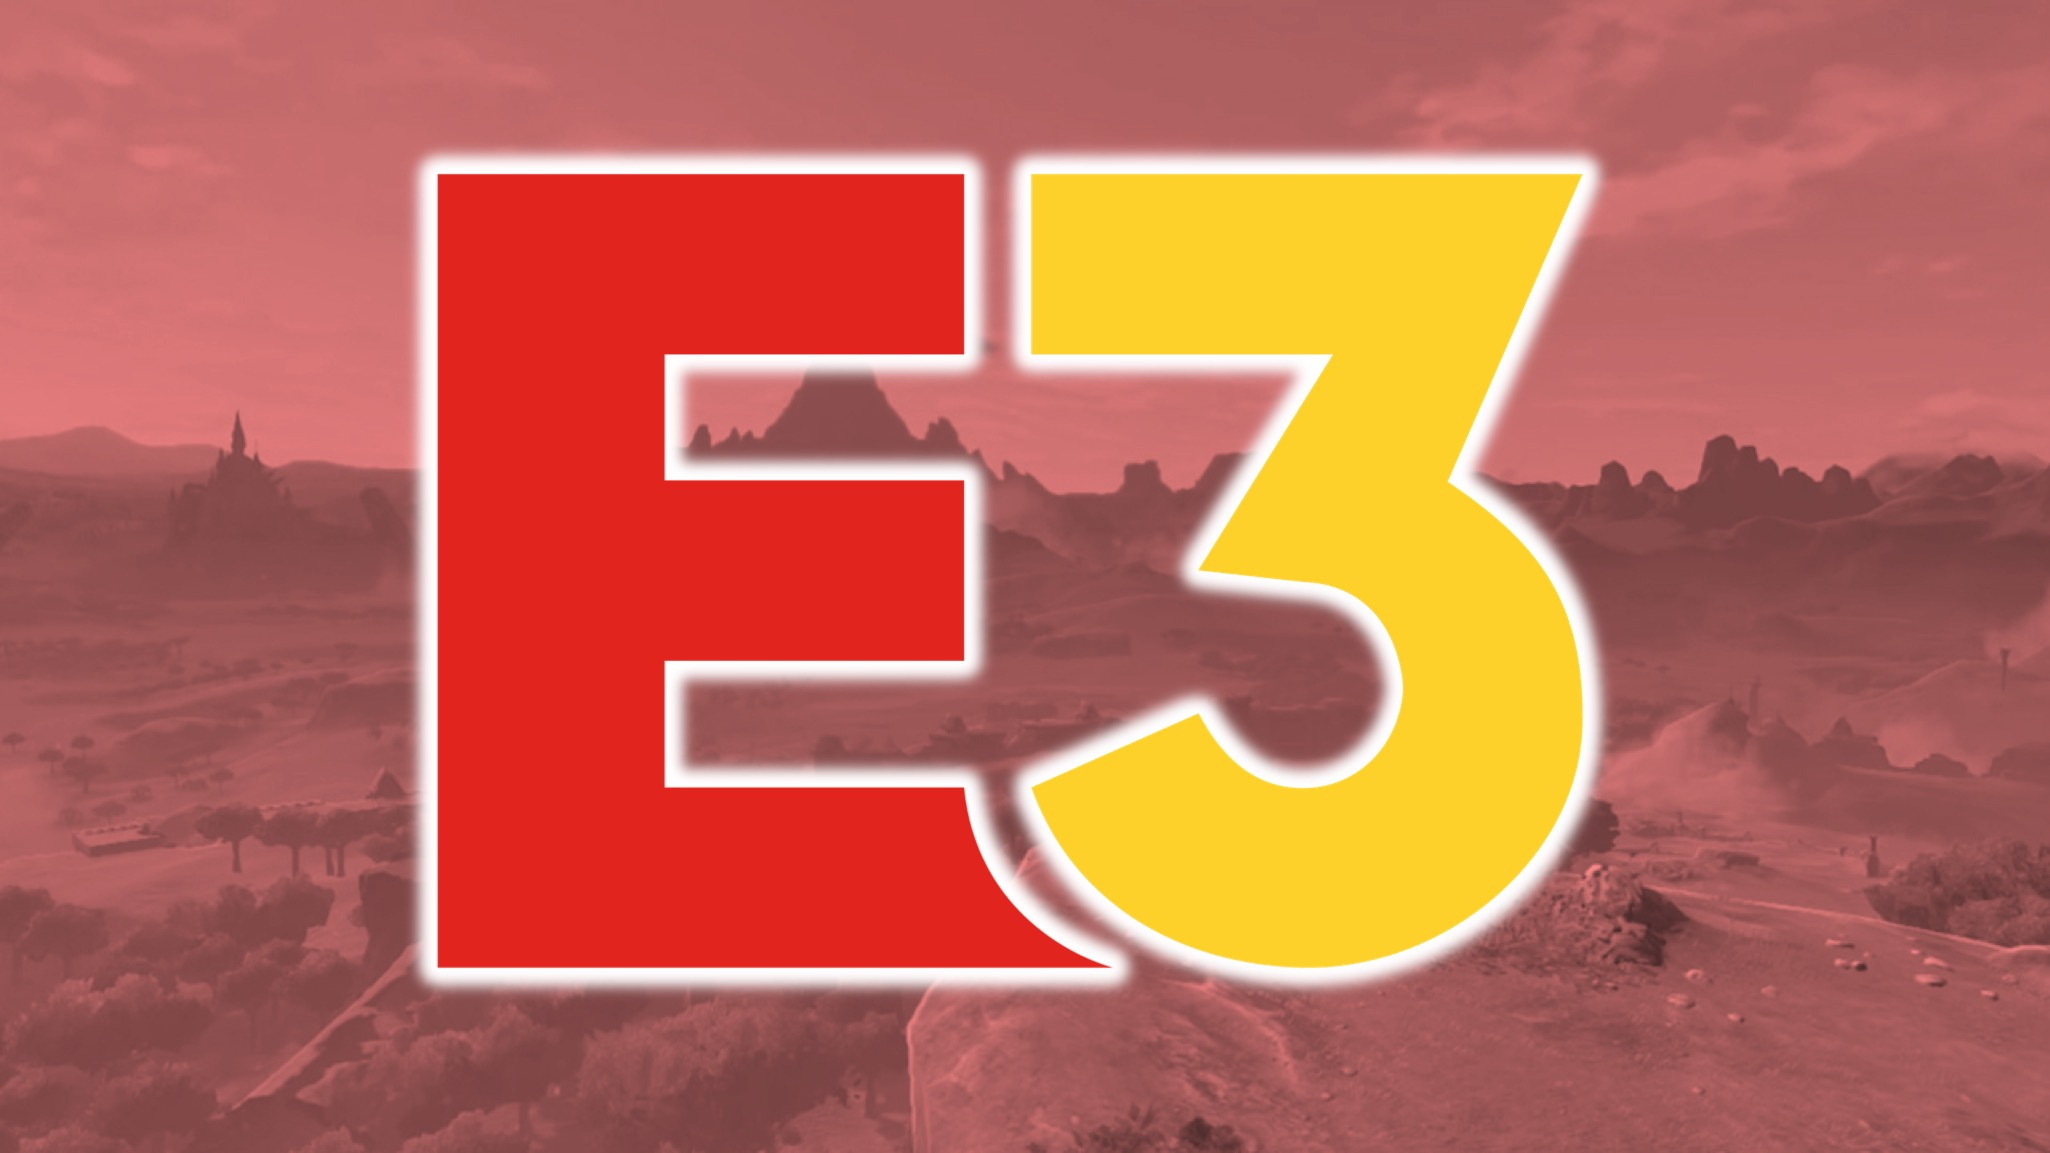 E3 2020 Games.Have The Post E3 Blues The Dates For E3 2020 Have Already